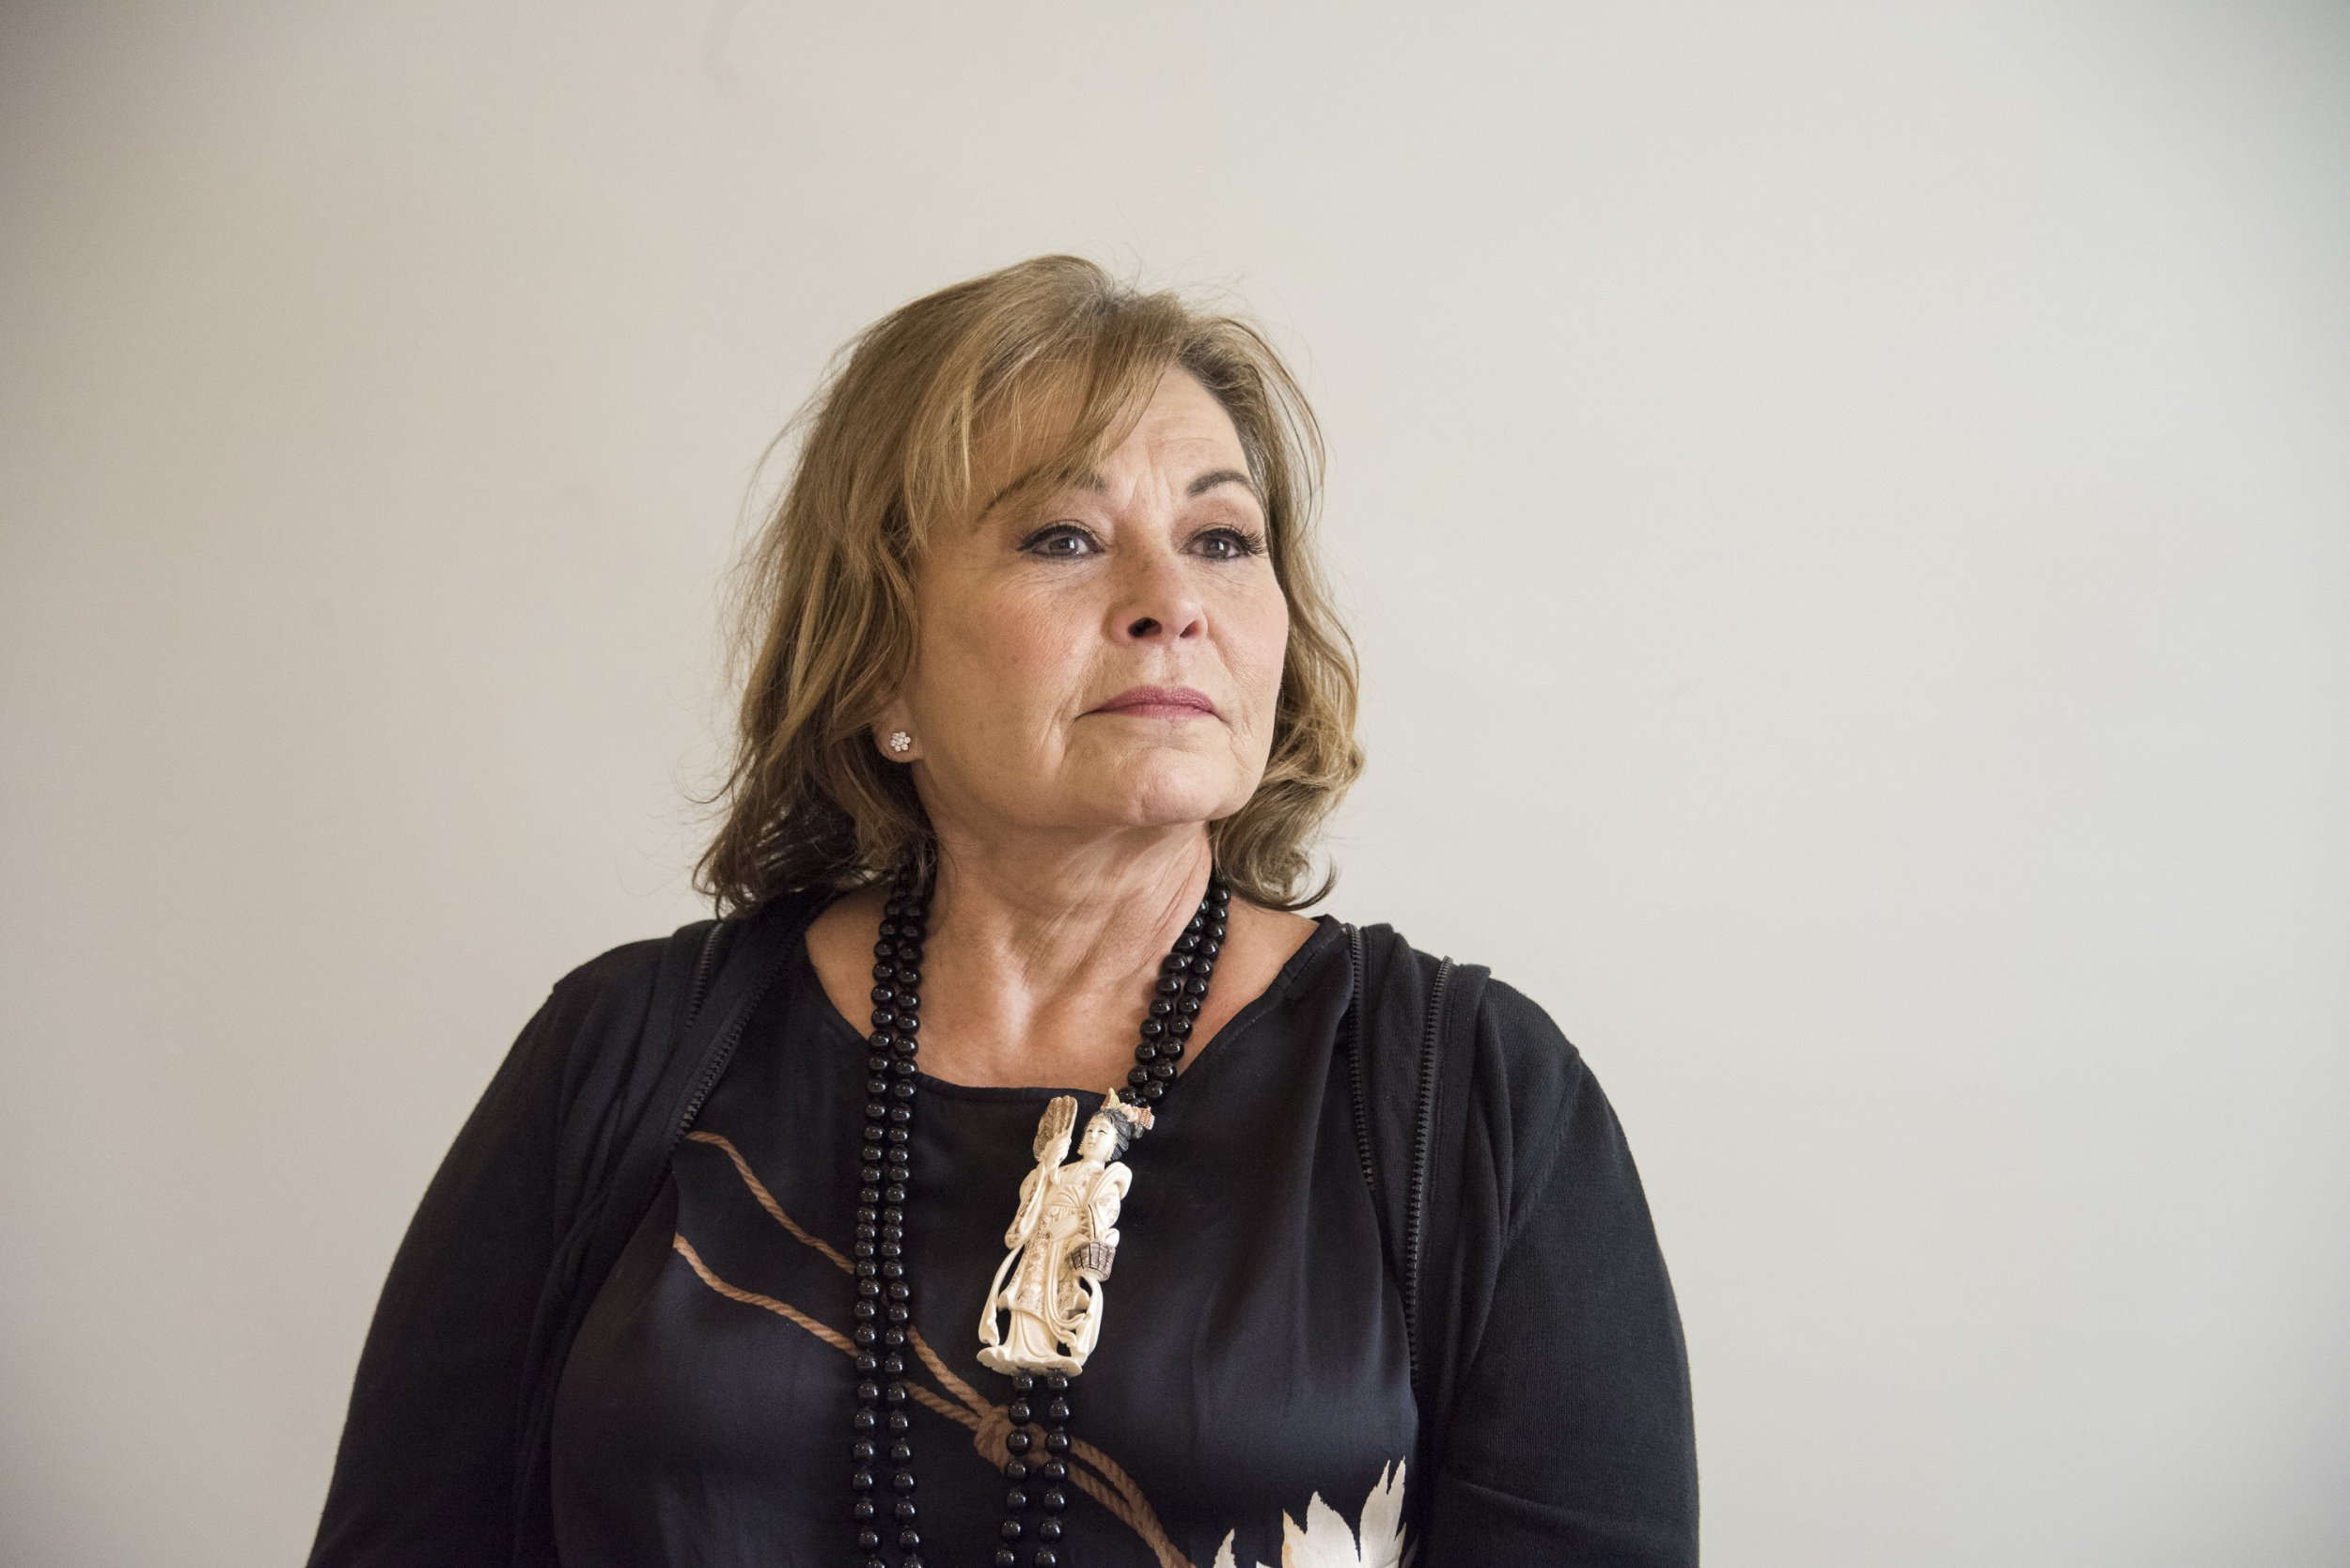 Roseanne Barr won't be censored for live podcast in first performance despite racism scandal